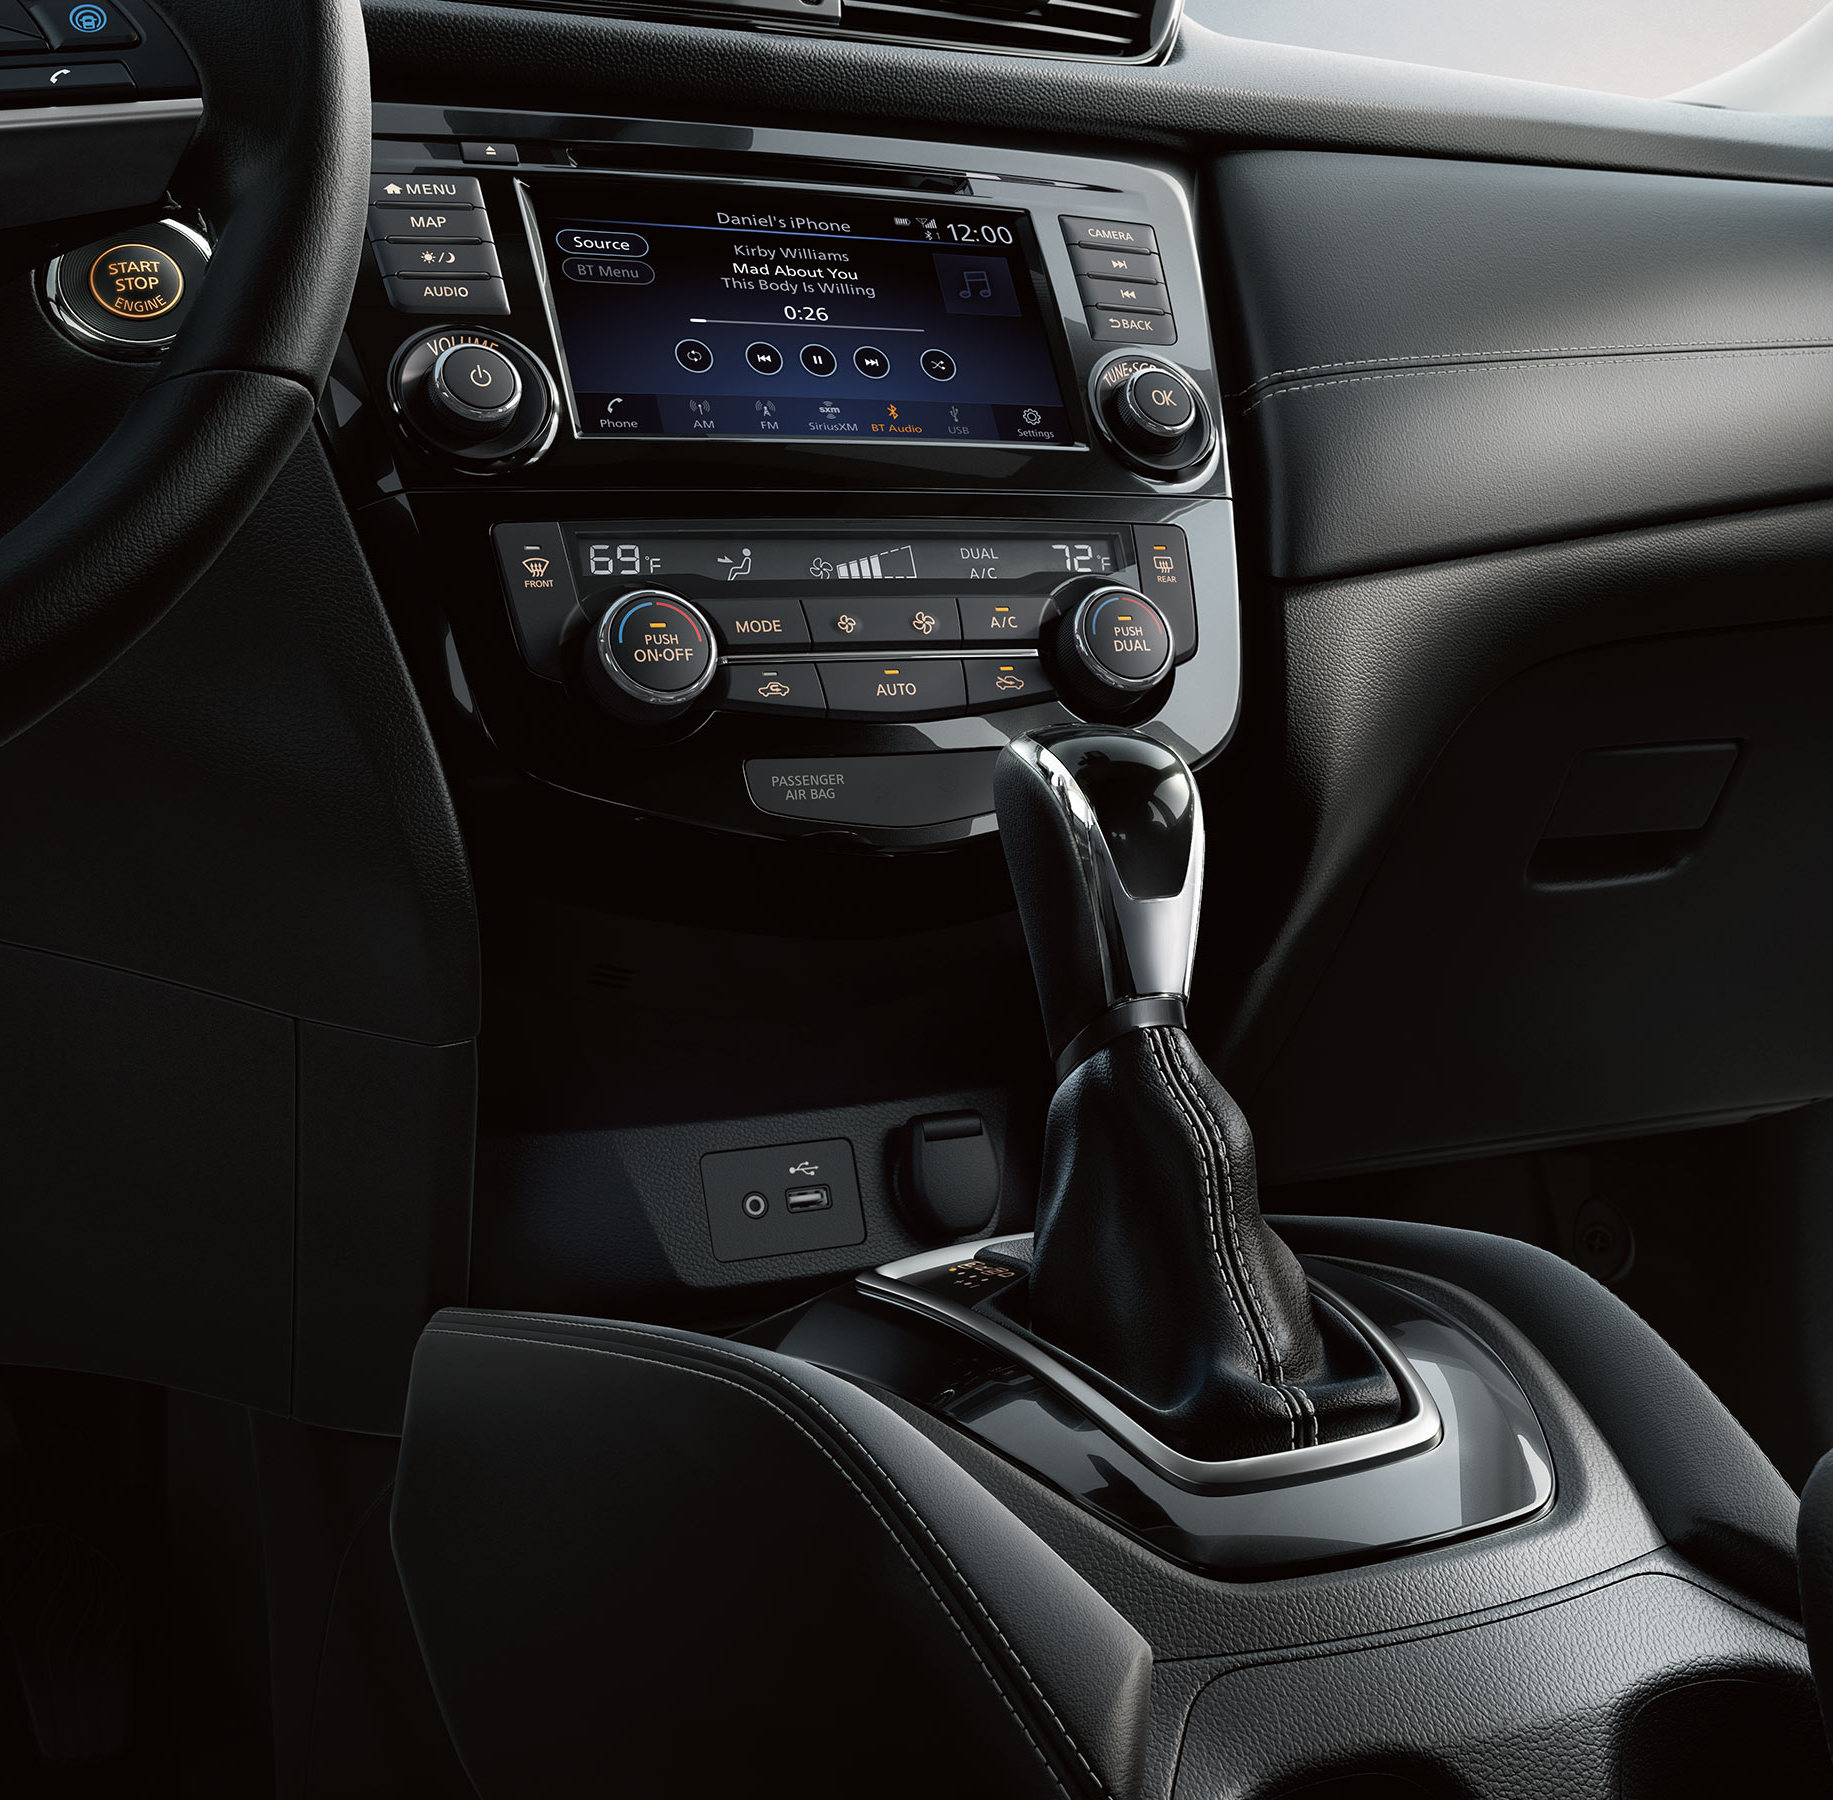 2020 Nissan Rogue Center Console